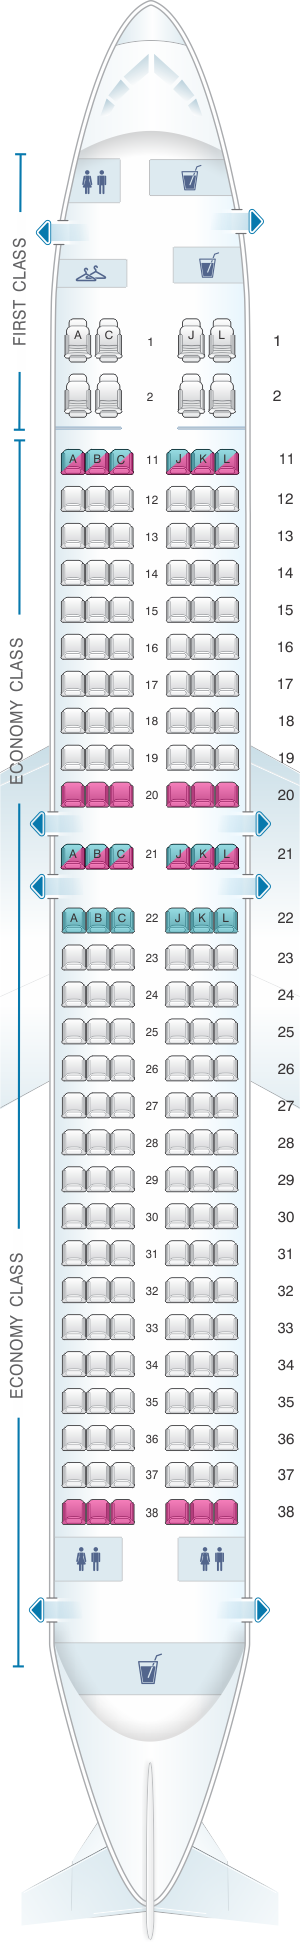 Seat map for Air China Boeing B737 800 (176PAX)